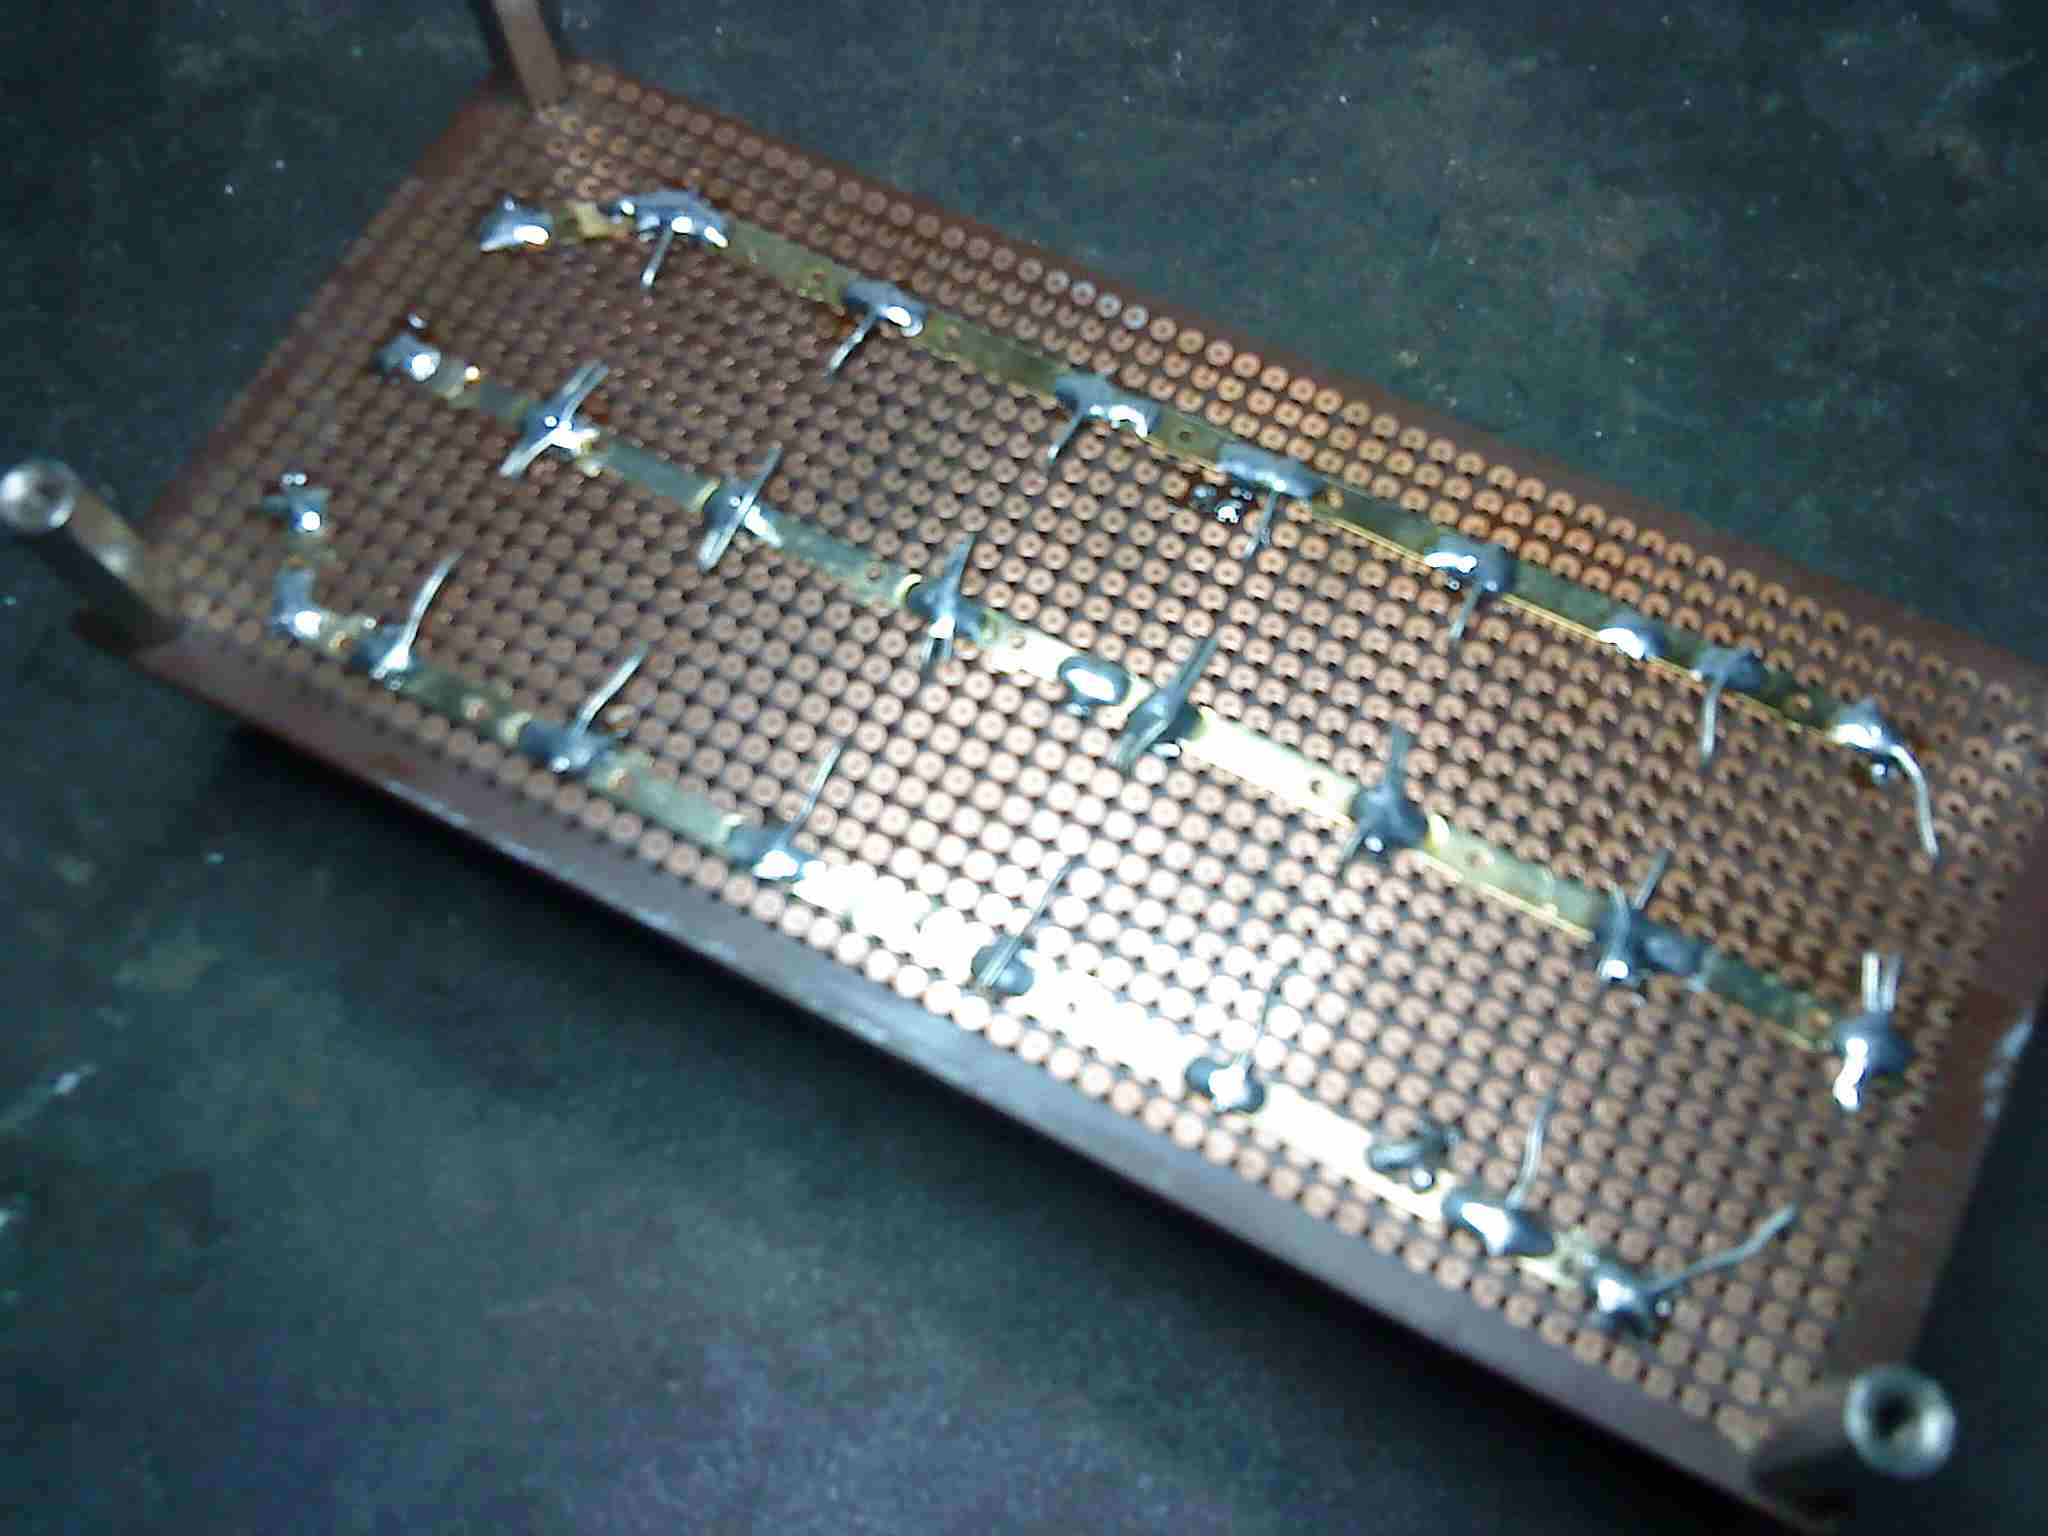 Standar PCB for mounting and metal plate (gold plated) for connecting all elco's.